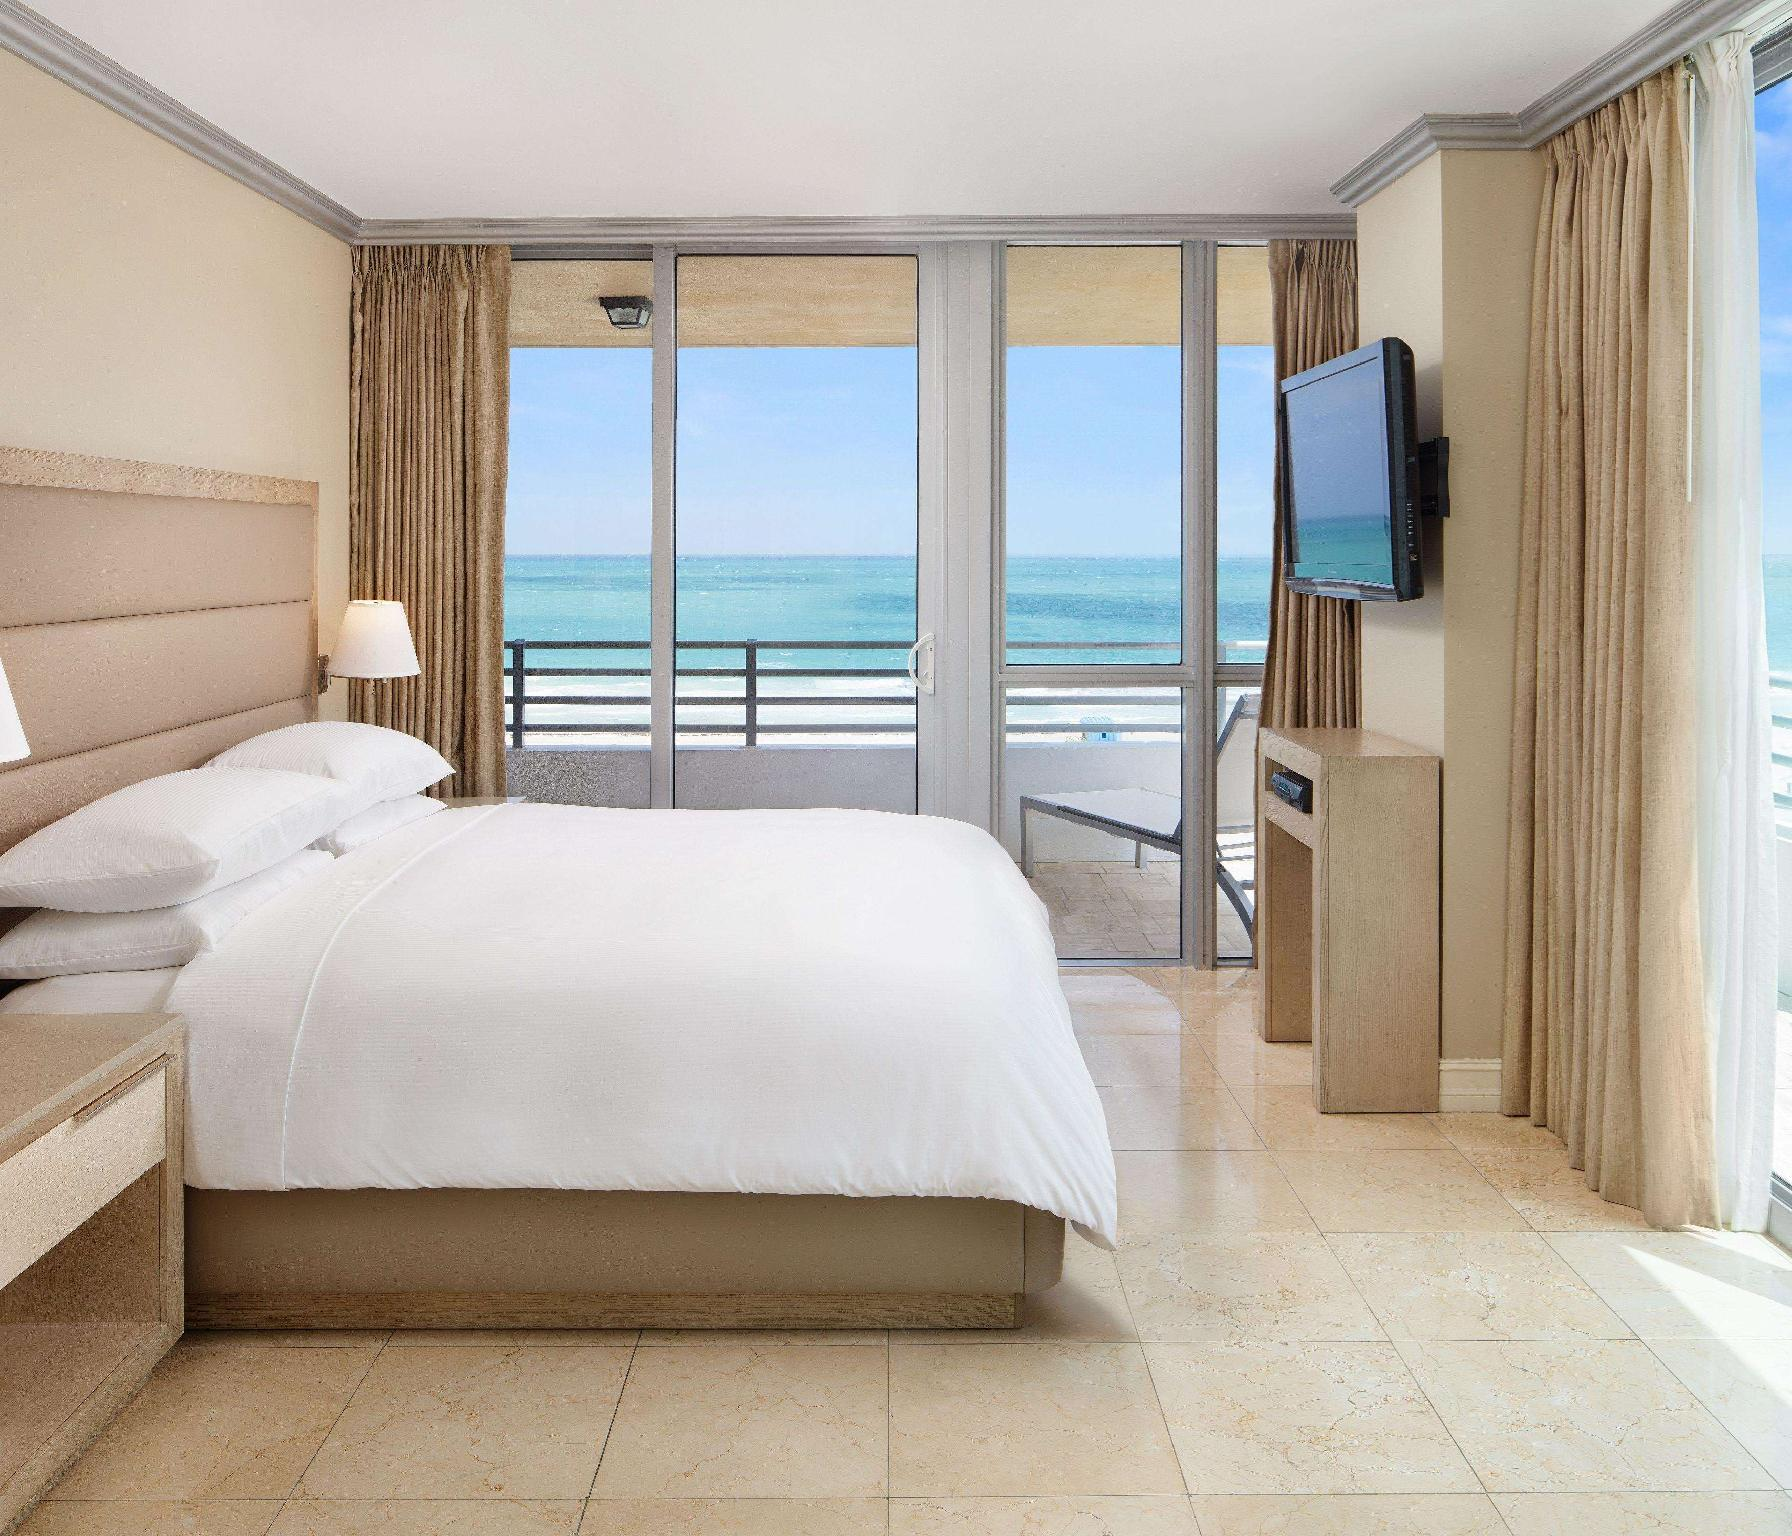 2 Bedroom Suite Oceanfront 2 King Bed 1 Sofabed